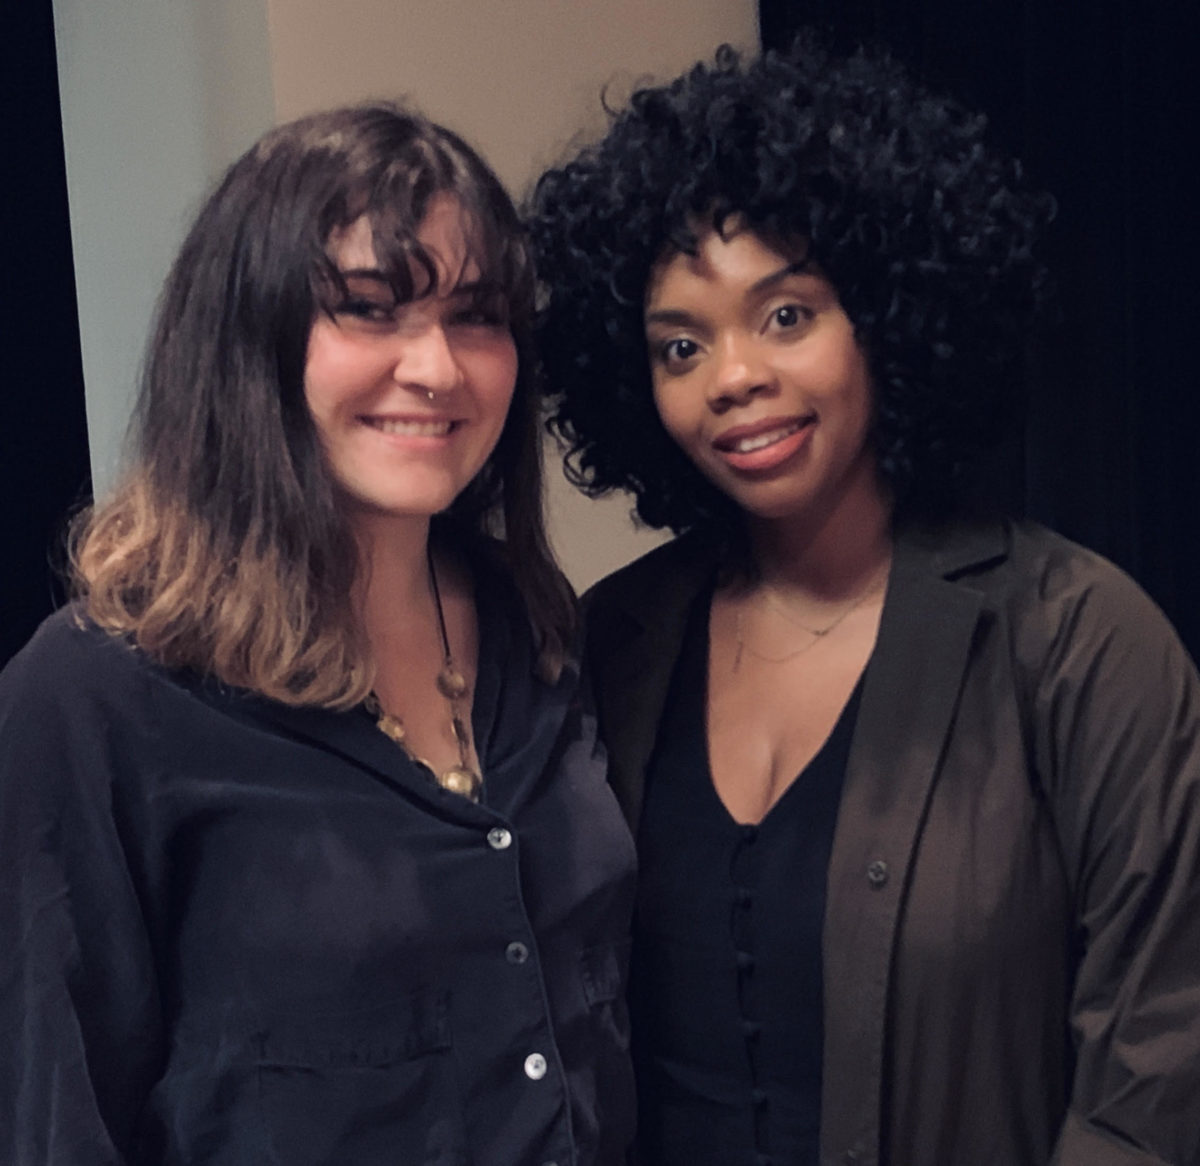 A white woman with brown hair and a black woman with natural hair stand next to each other smiling.